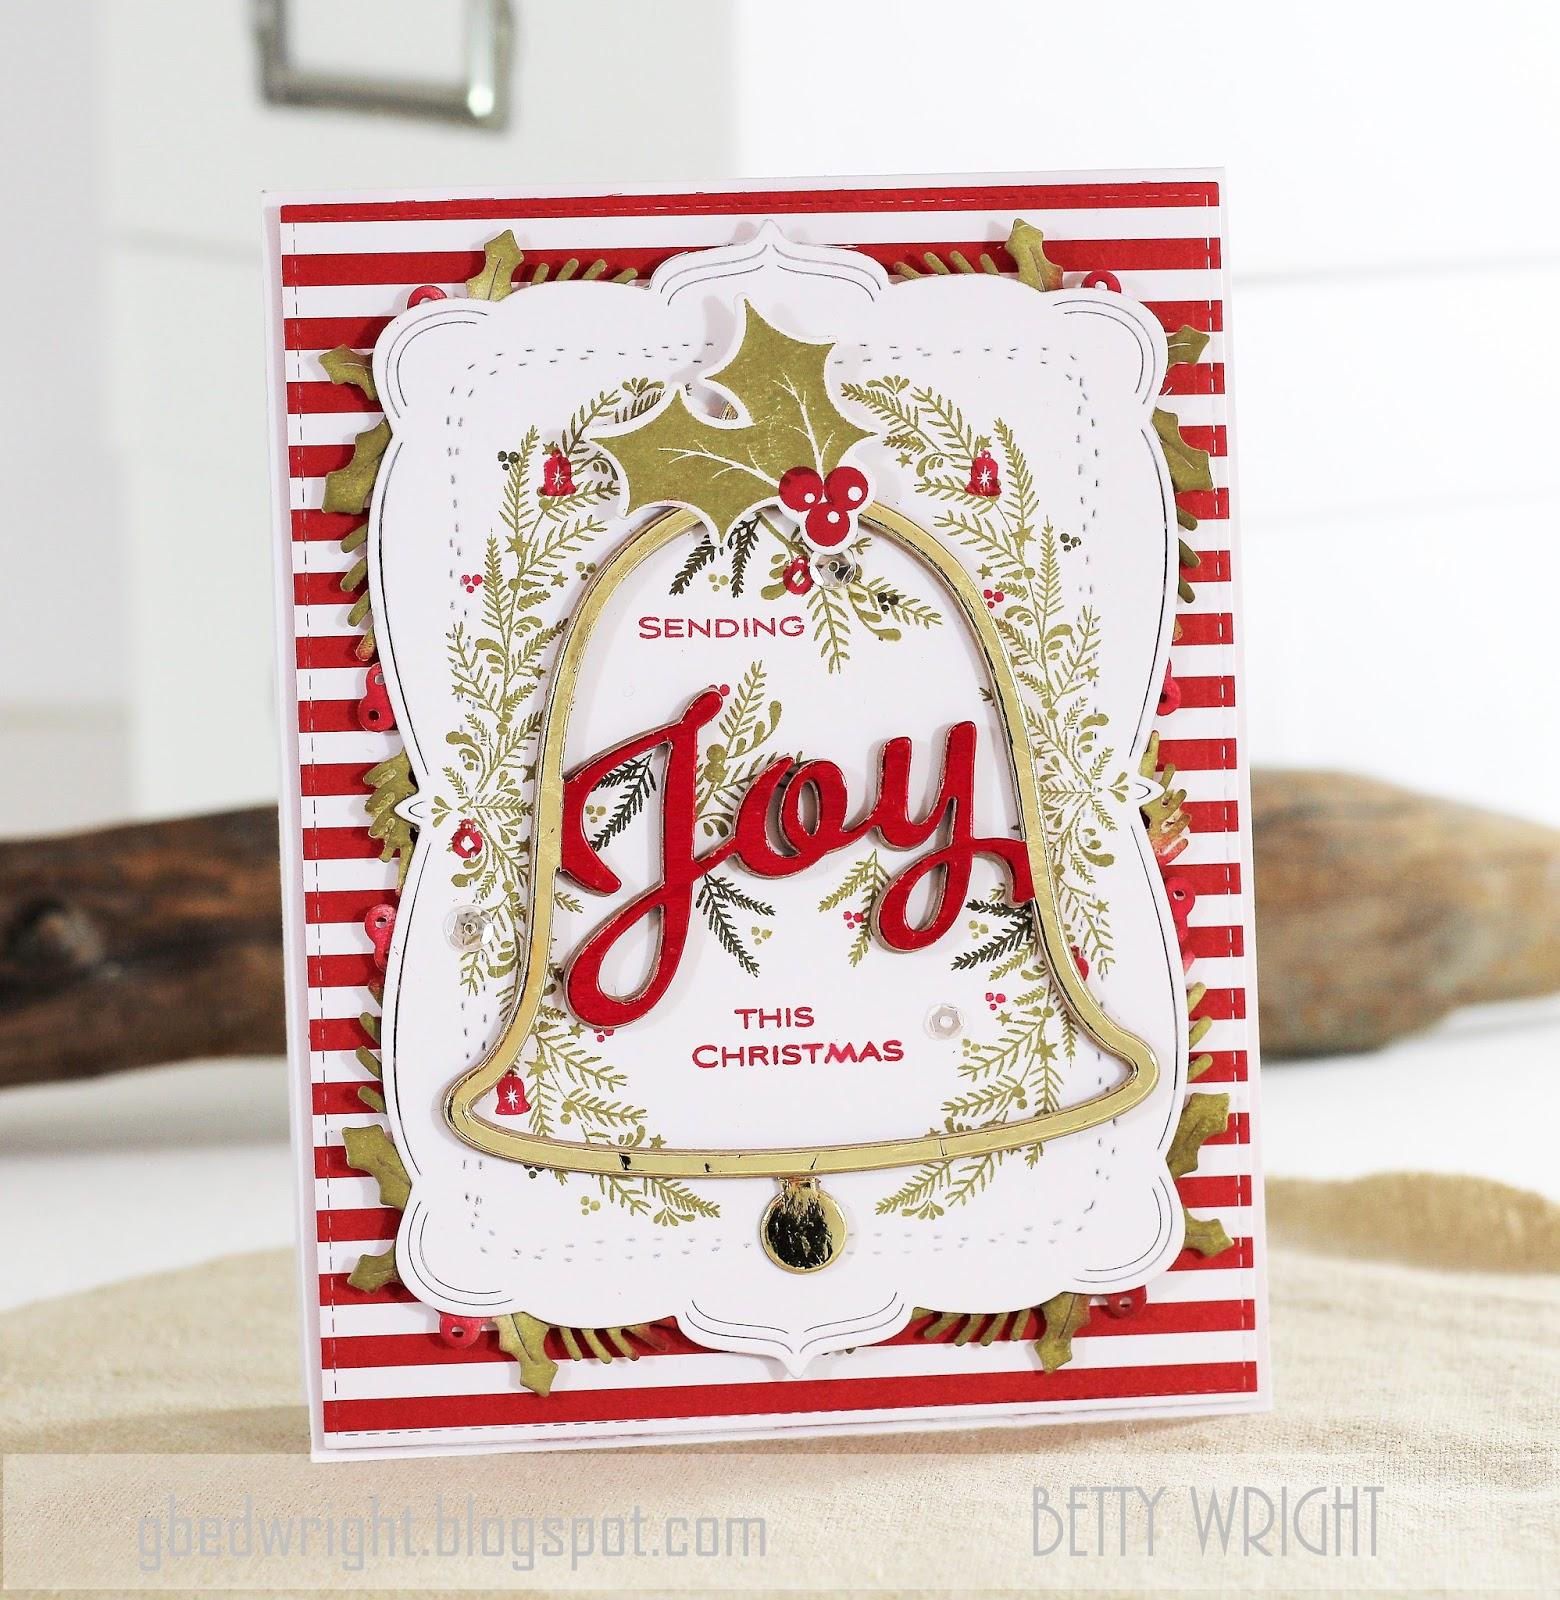 Sending Joy This Christmas! | The Things I Do With Paper